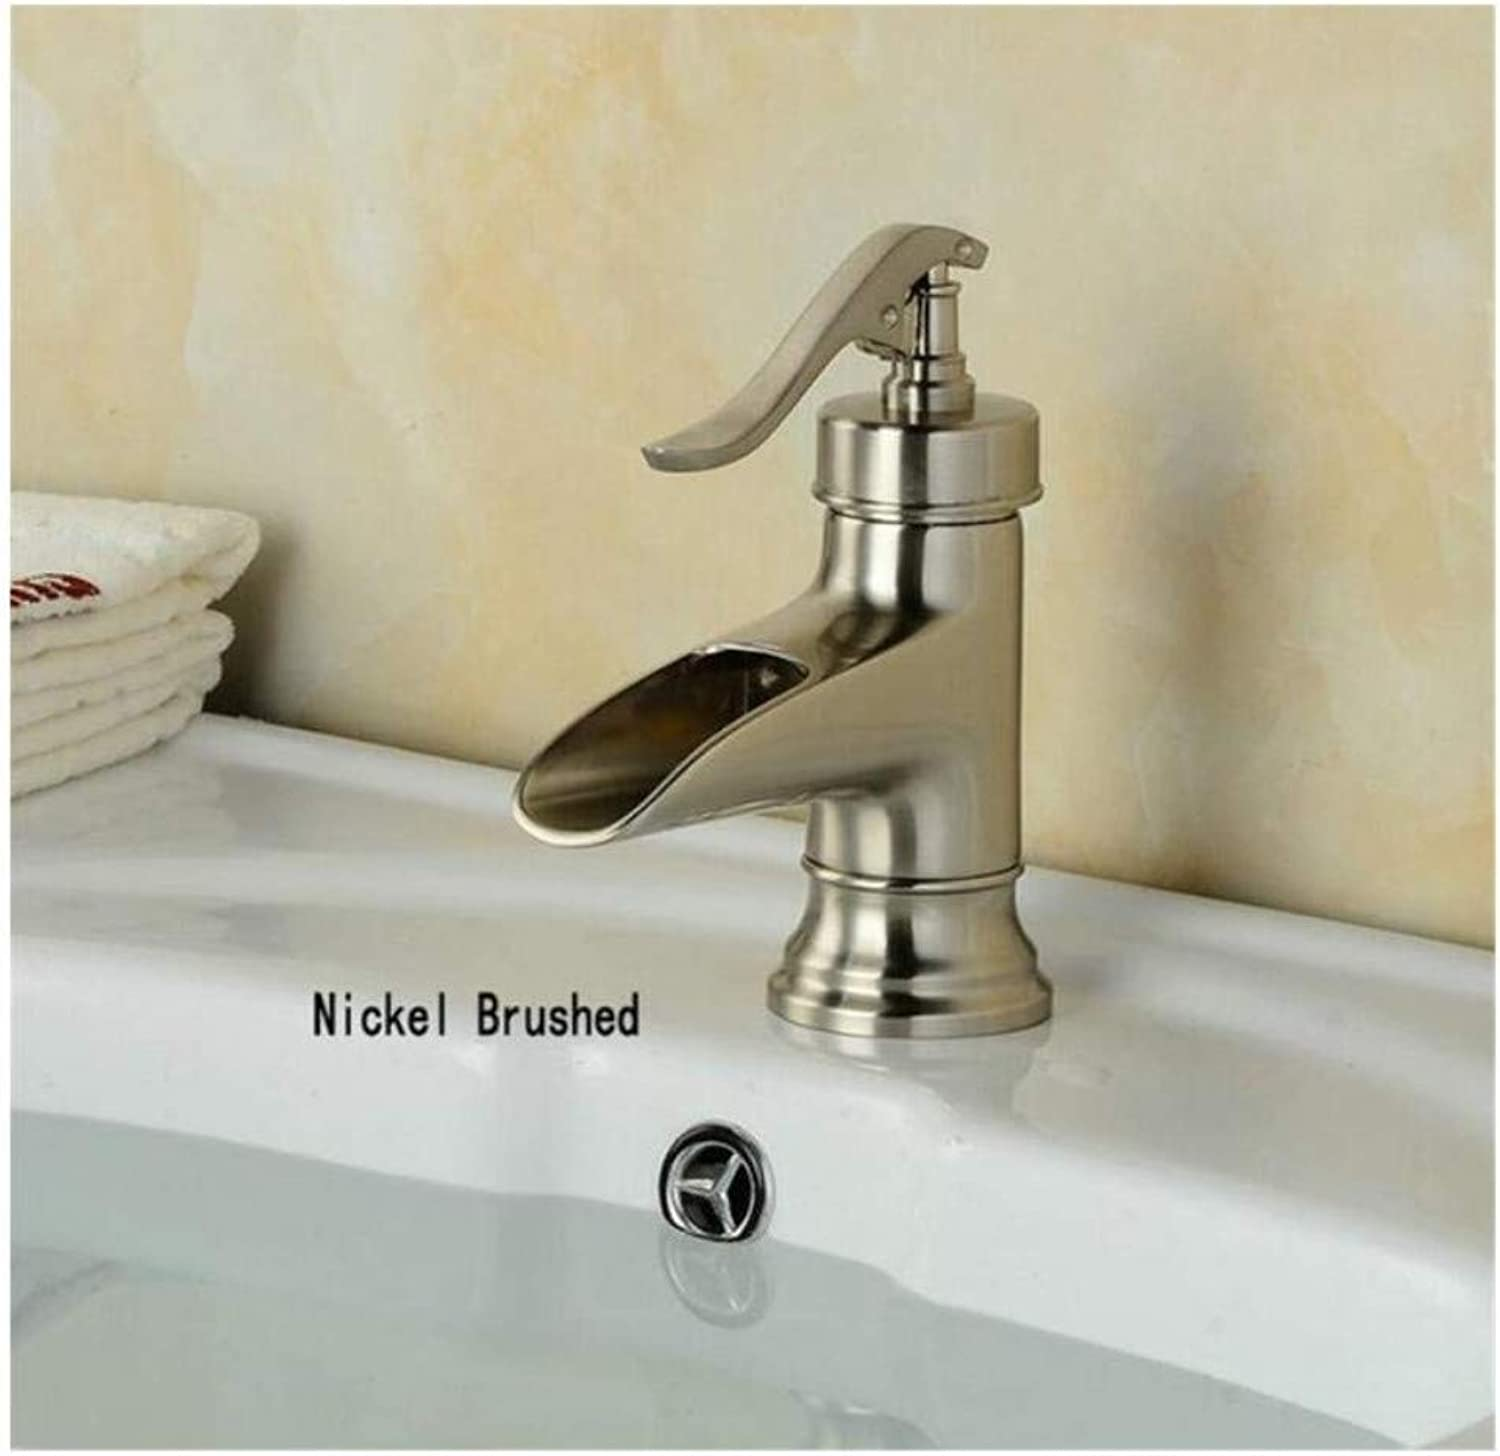 Brass Wall Faucet Chrome Brass Faucet Faucet Bathroom Basin Mixer Tap with Hot&Cold Water